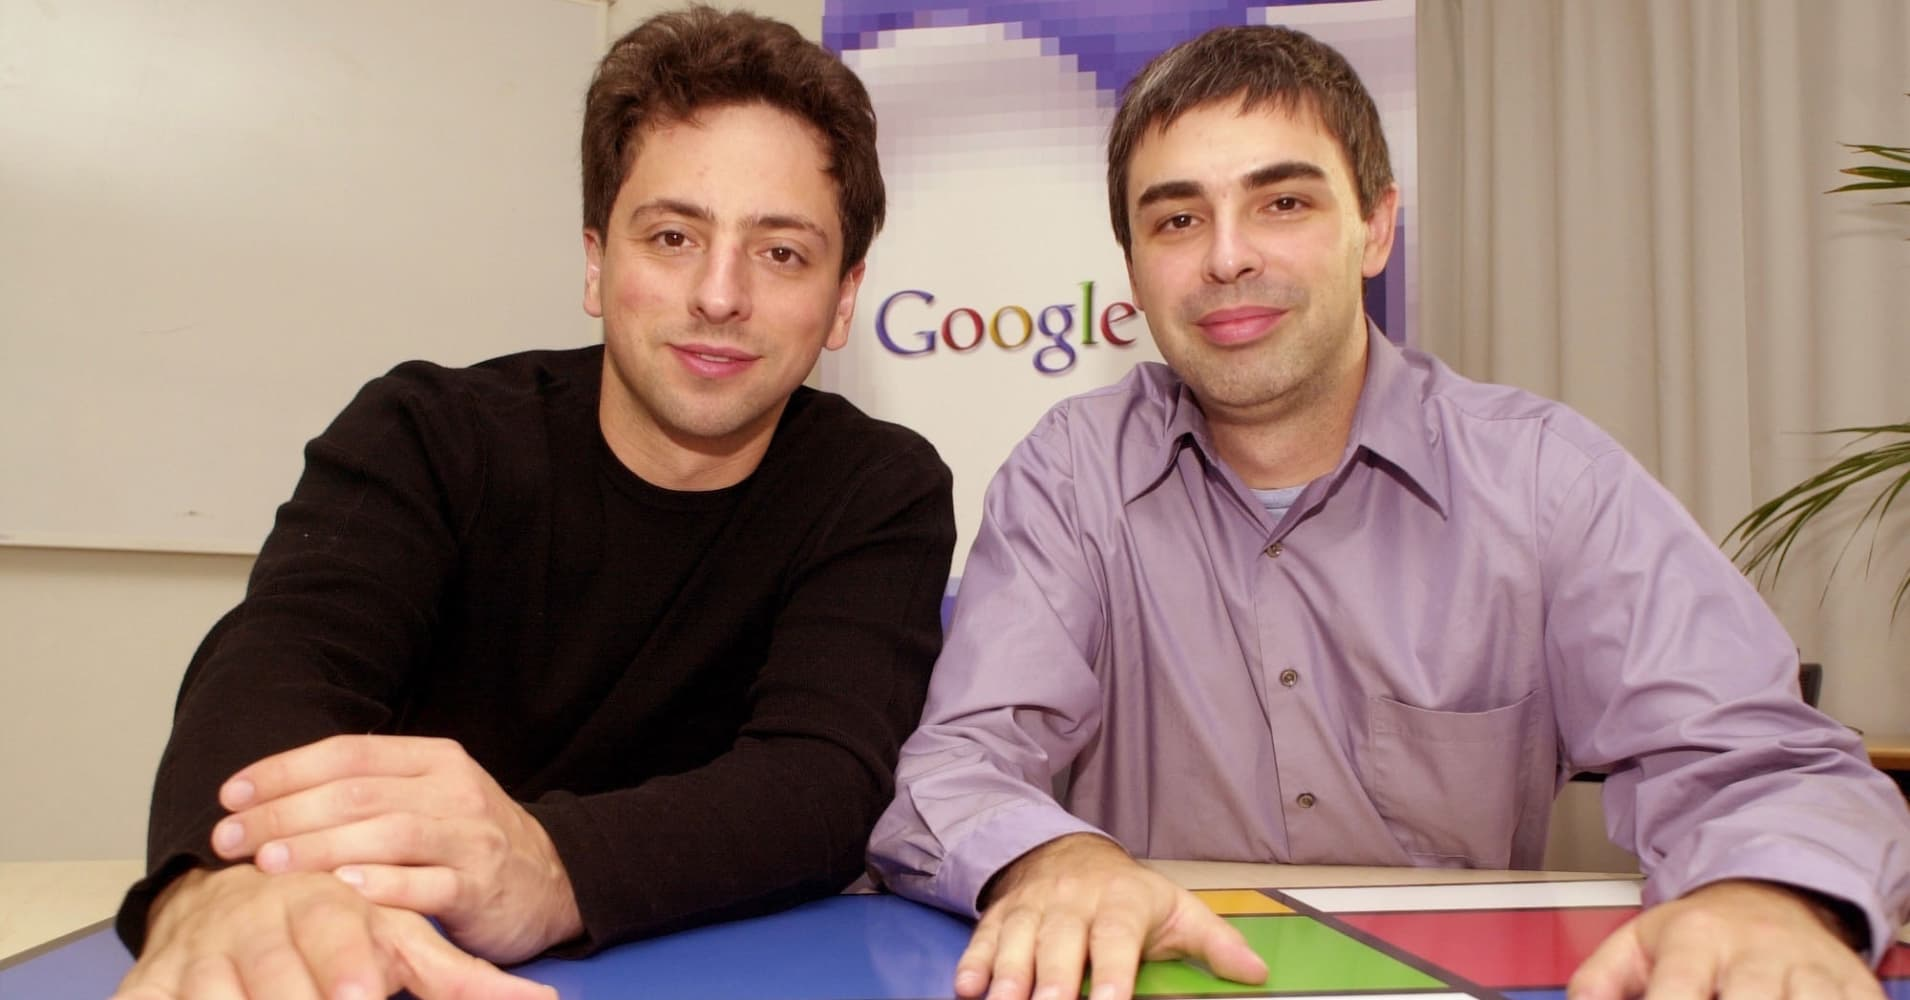 Google's Larry Page and Sergey Brin ask an unusual ...